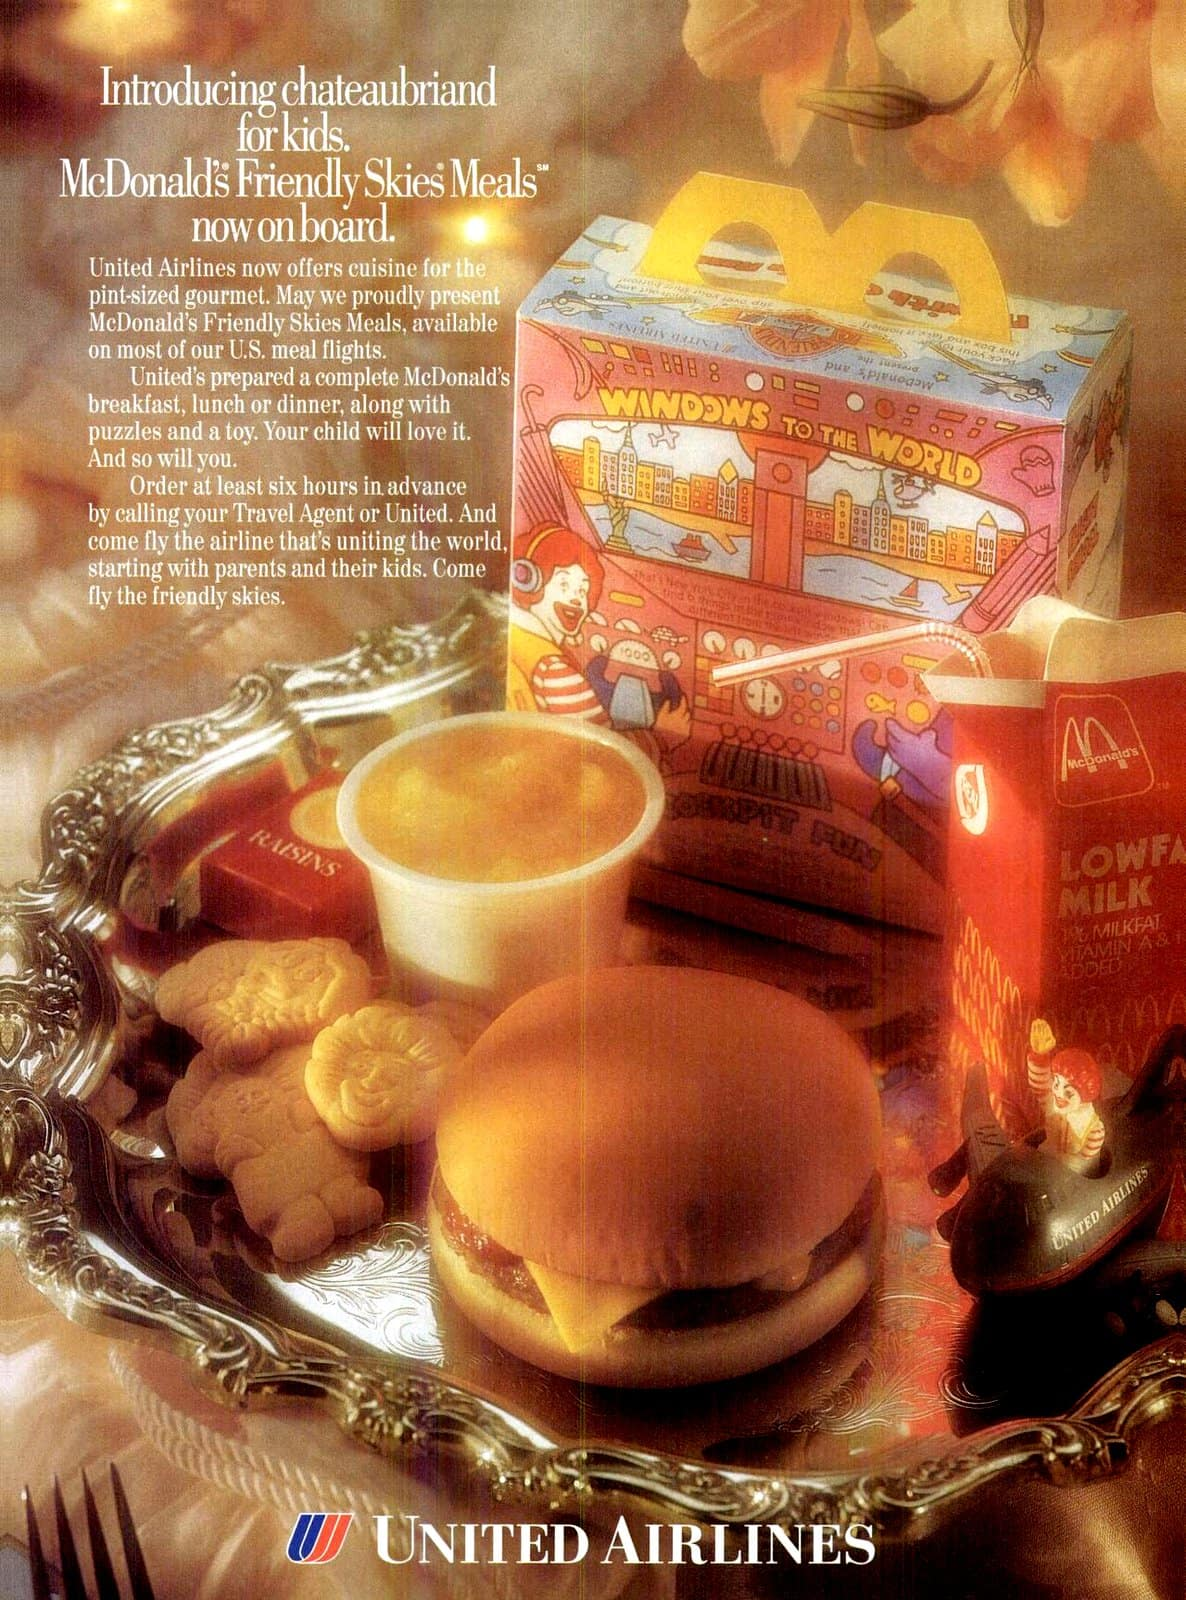 Vintage 1993 McDonalds Happy meals on United Airlines